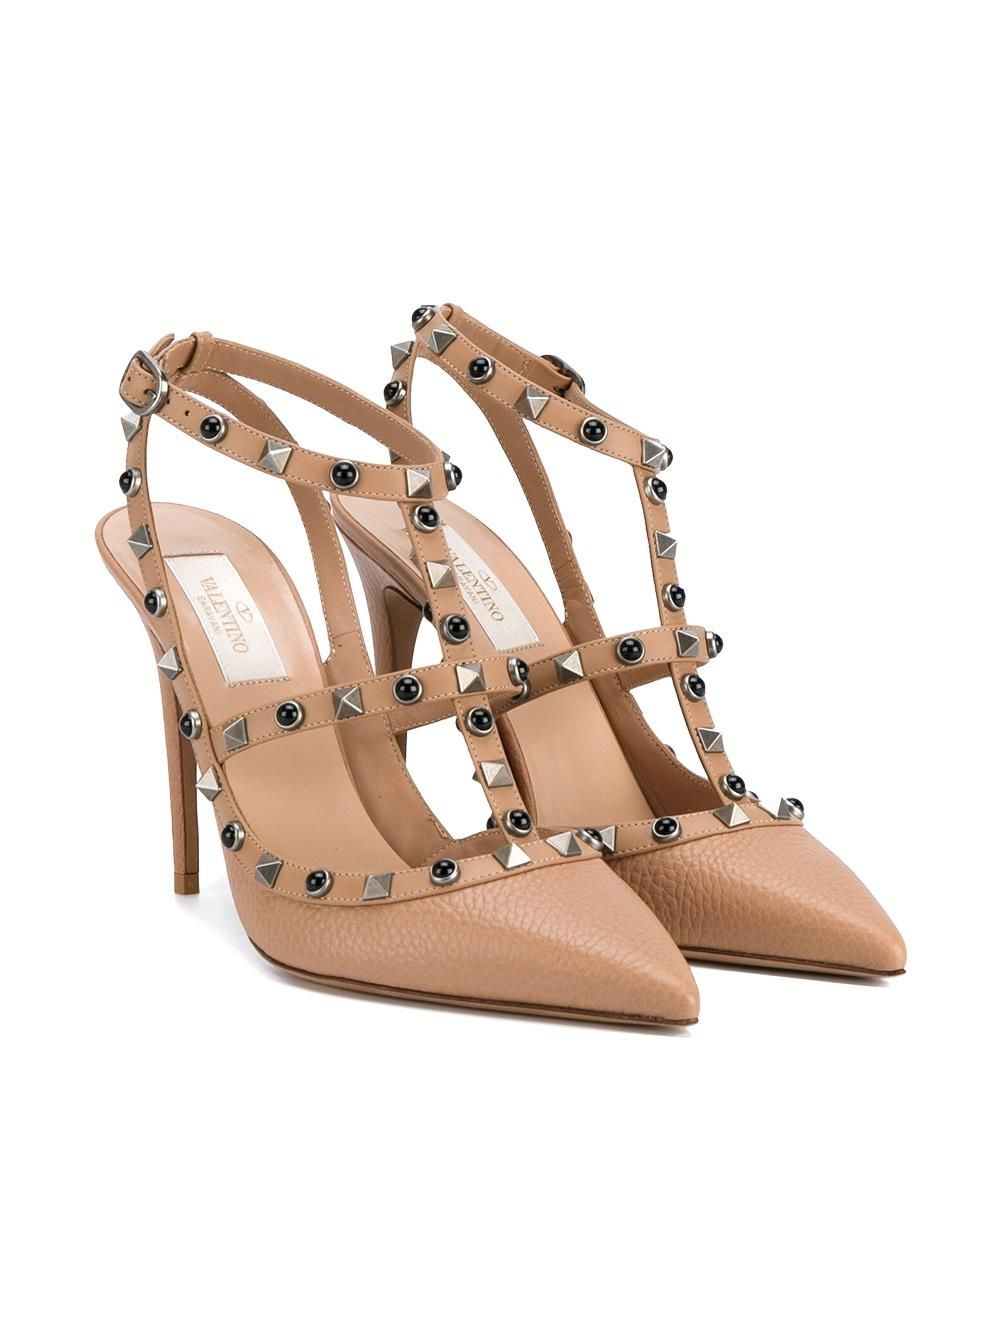 Imported From Abroad Womens Valentino Garavani 'rockstud' Pumps Last 2017